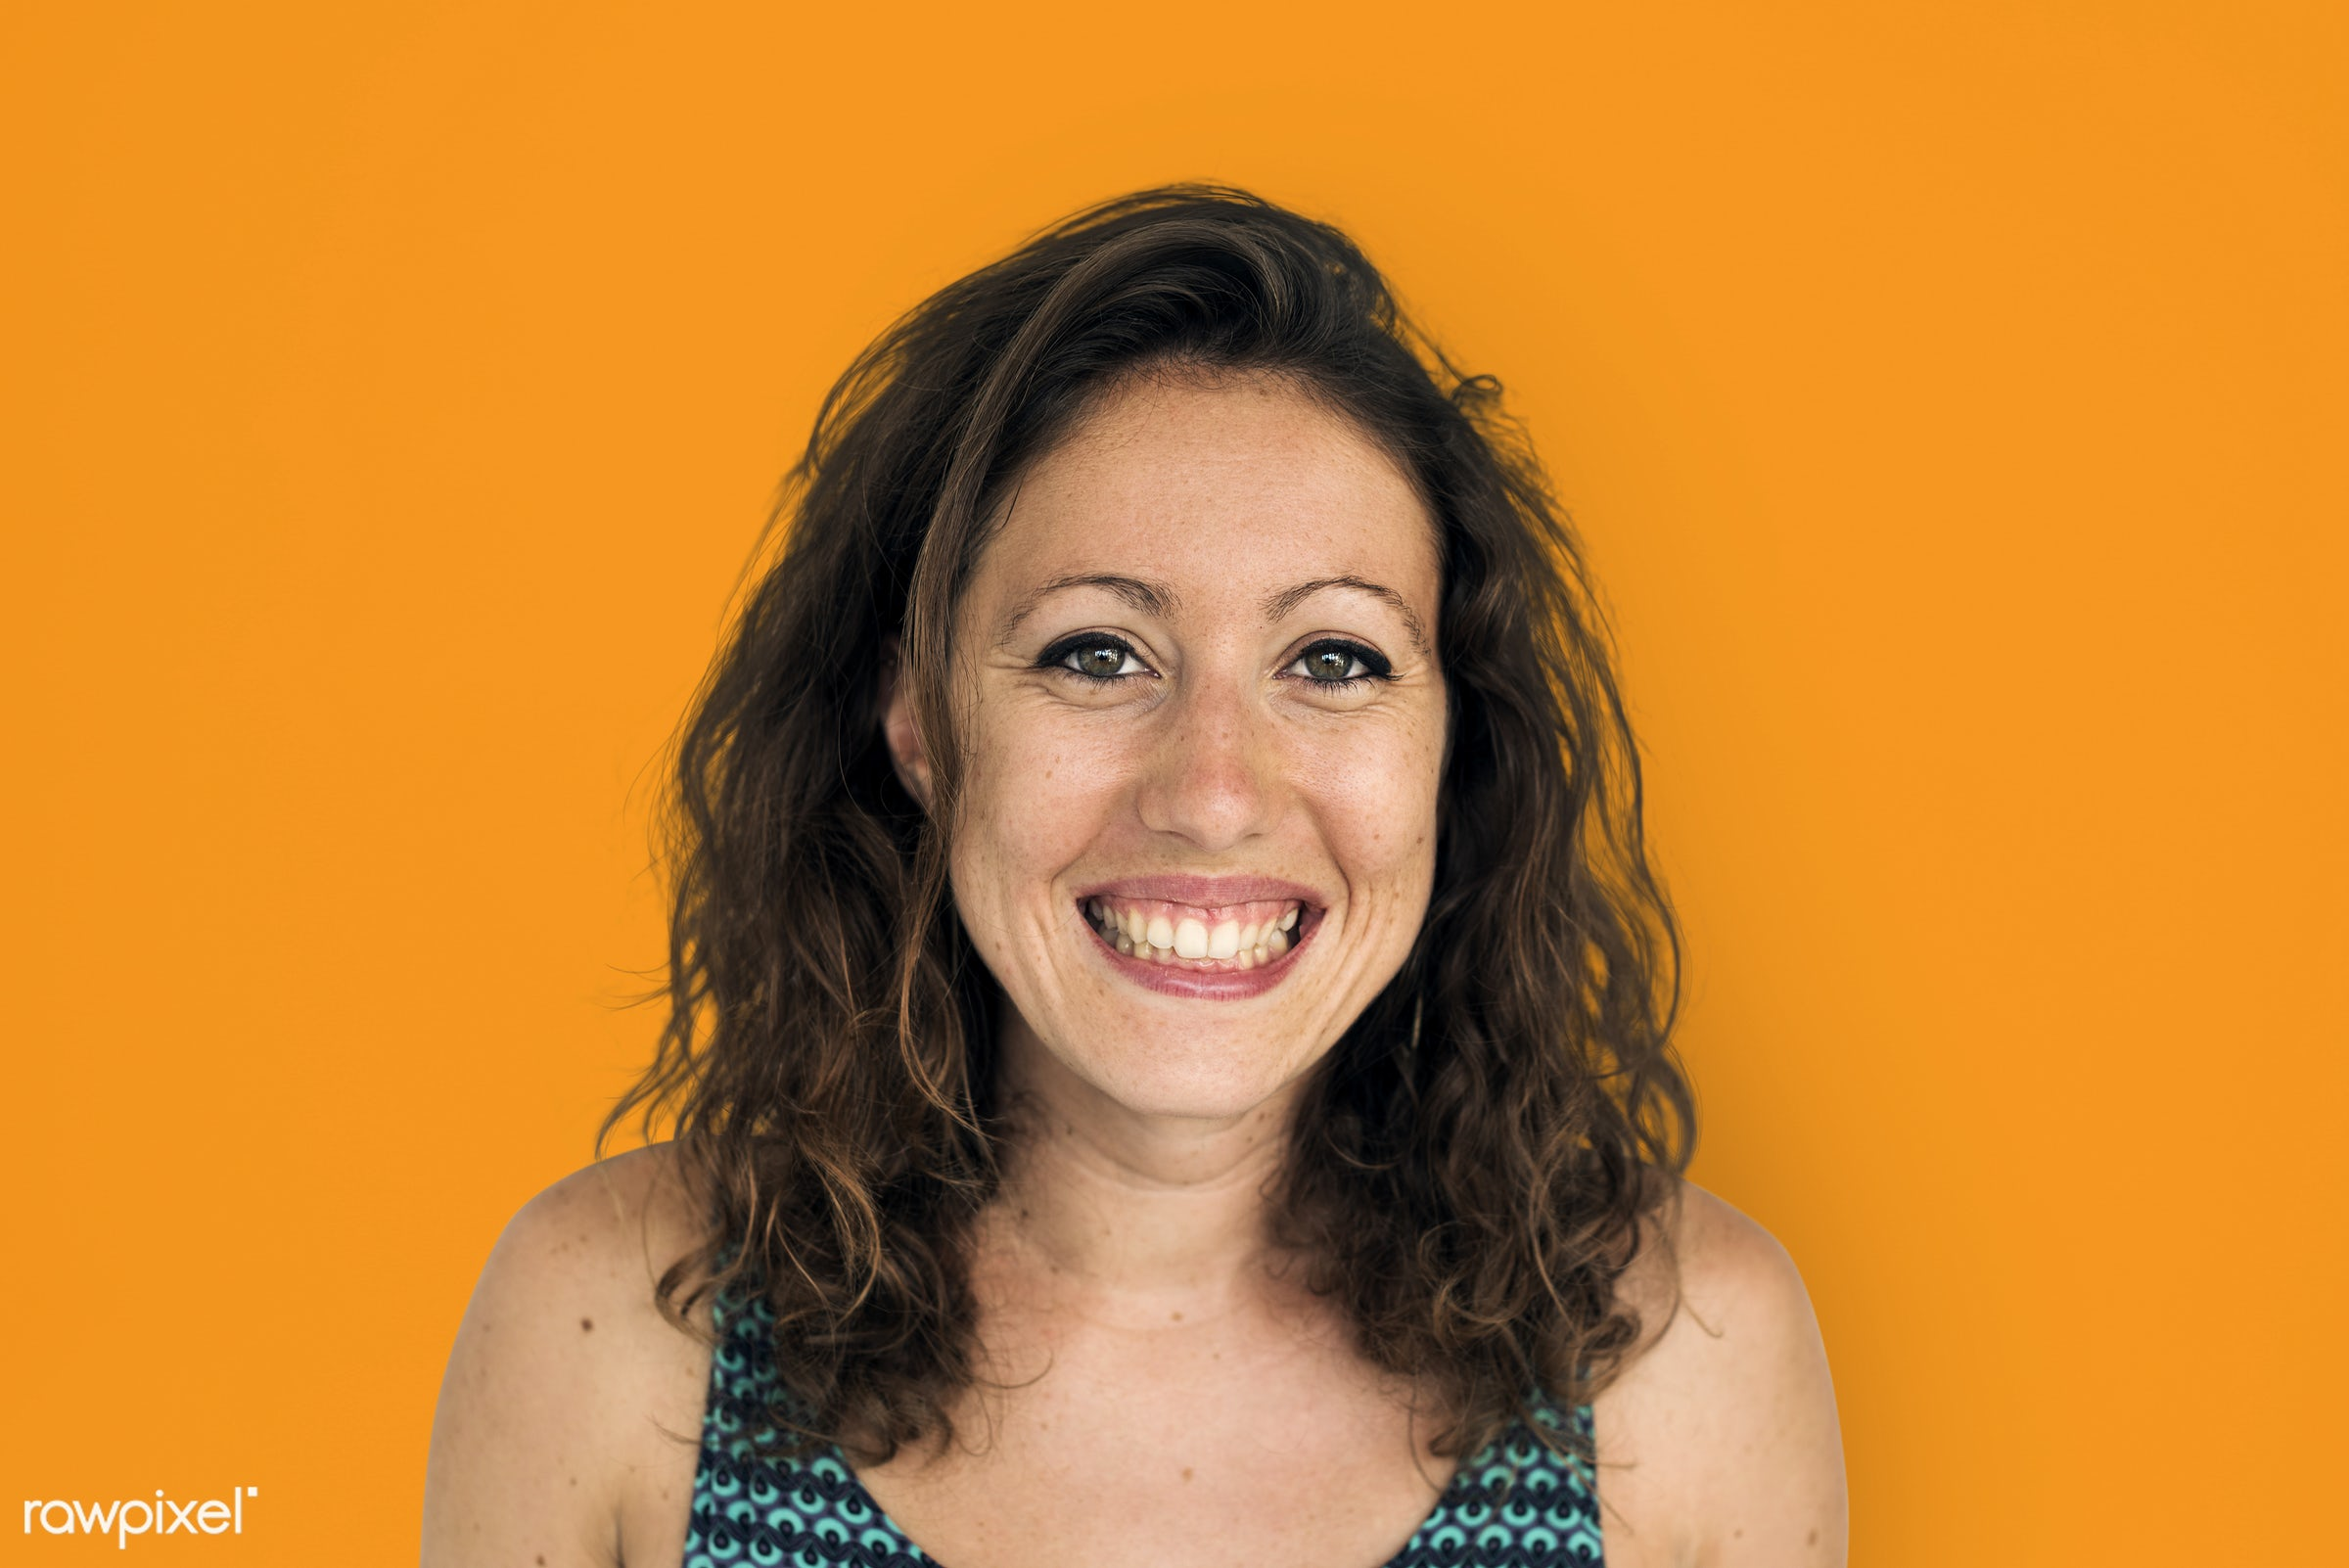 studio, expression, person, people, woman, smile, cheerful, smiling, orange, happiness, portrait, emotion, charming, face,...